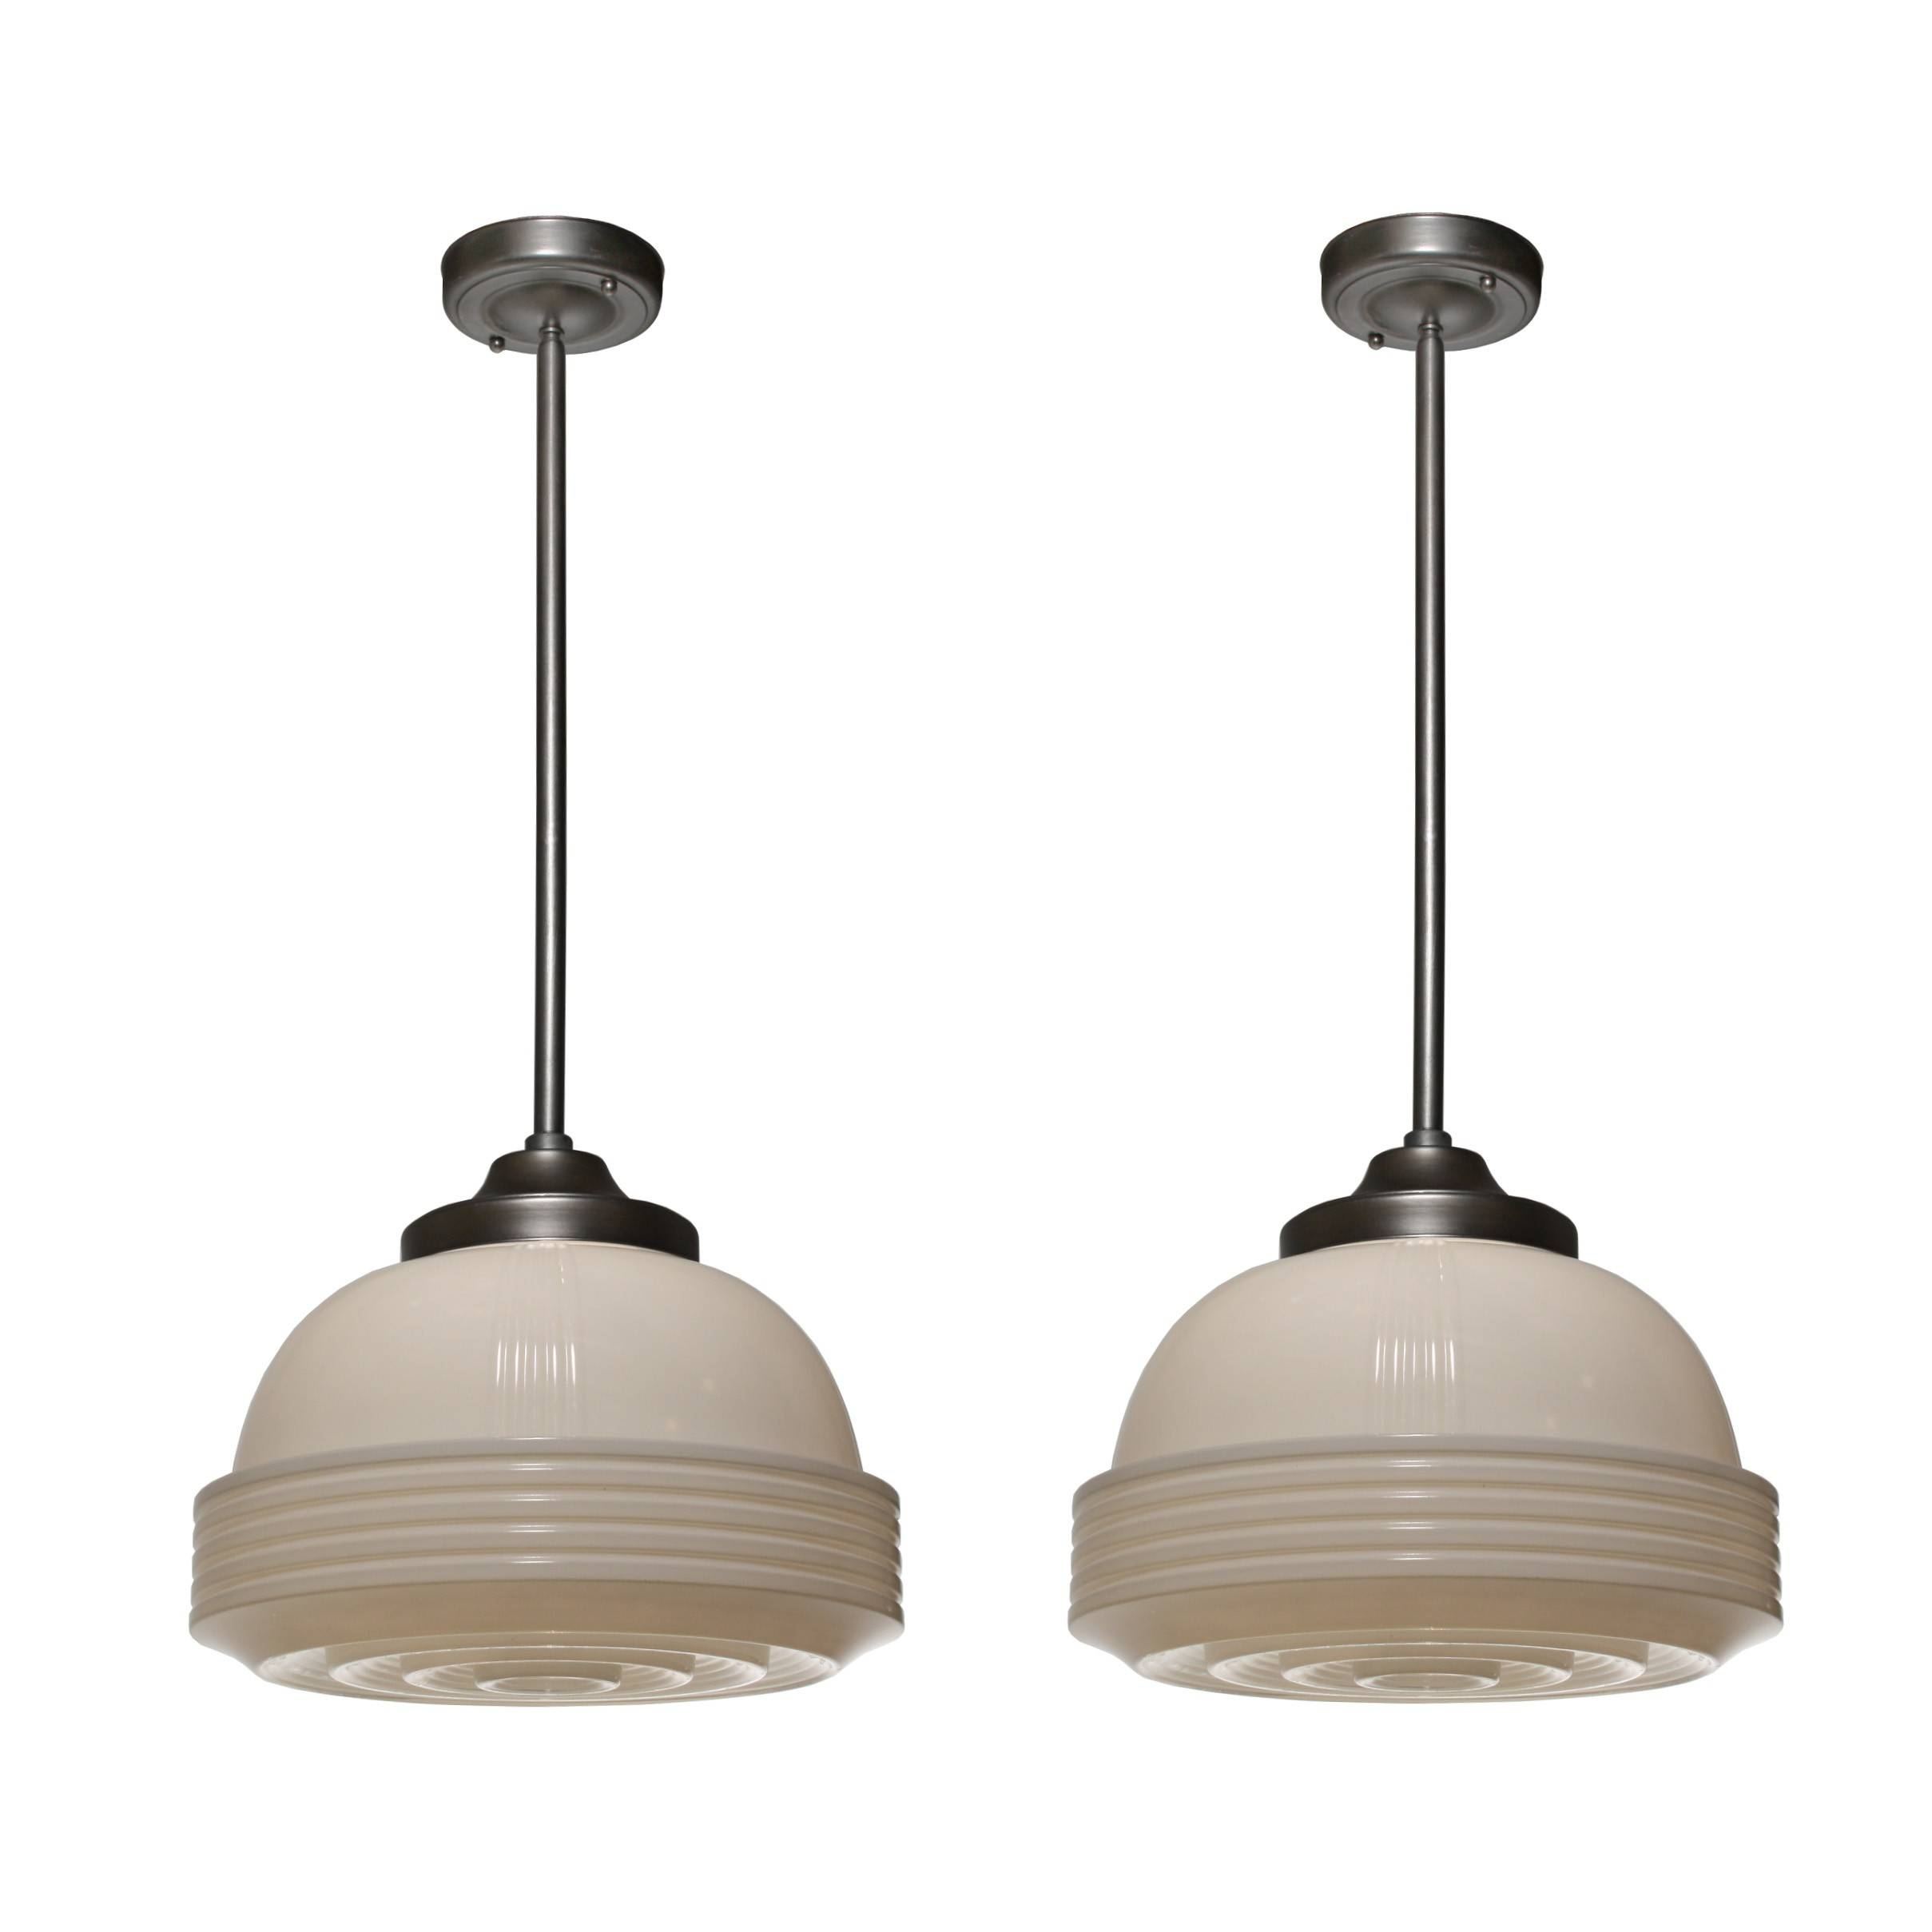 Unusual Antique Art Deco Pendant Lights With Glass Shades, 1930's inside Art Glass Pendant Lights Shades (Image 15 of 15)